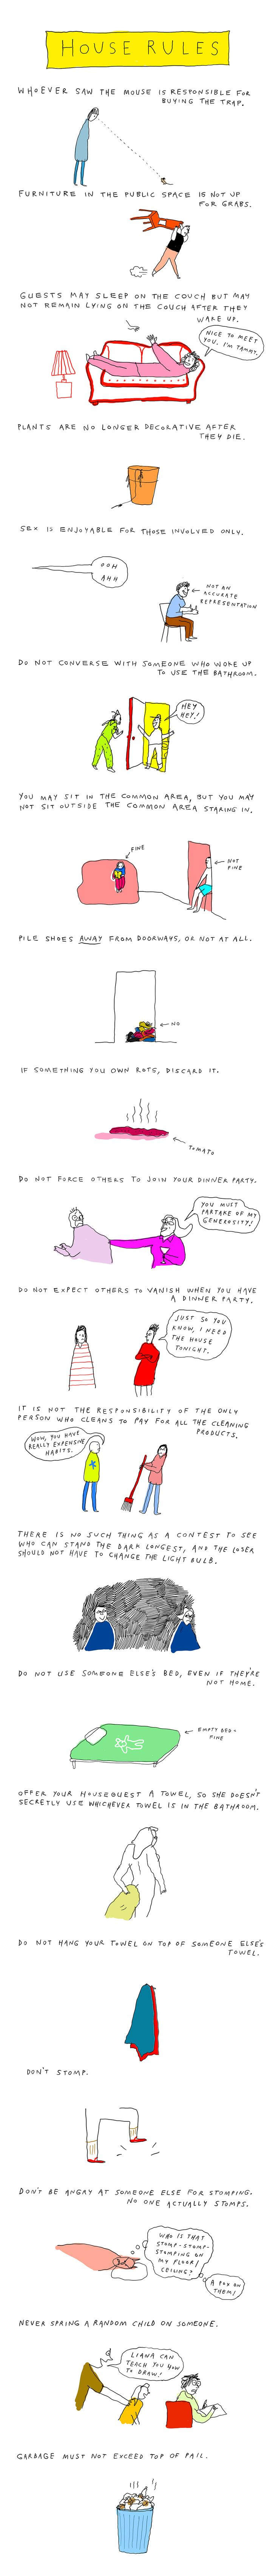 Living with roomates cartoon, rules that exist | ILLUSTRATION BY LIANA FINCK